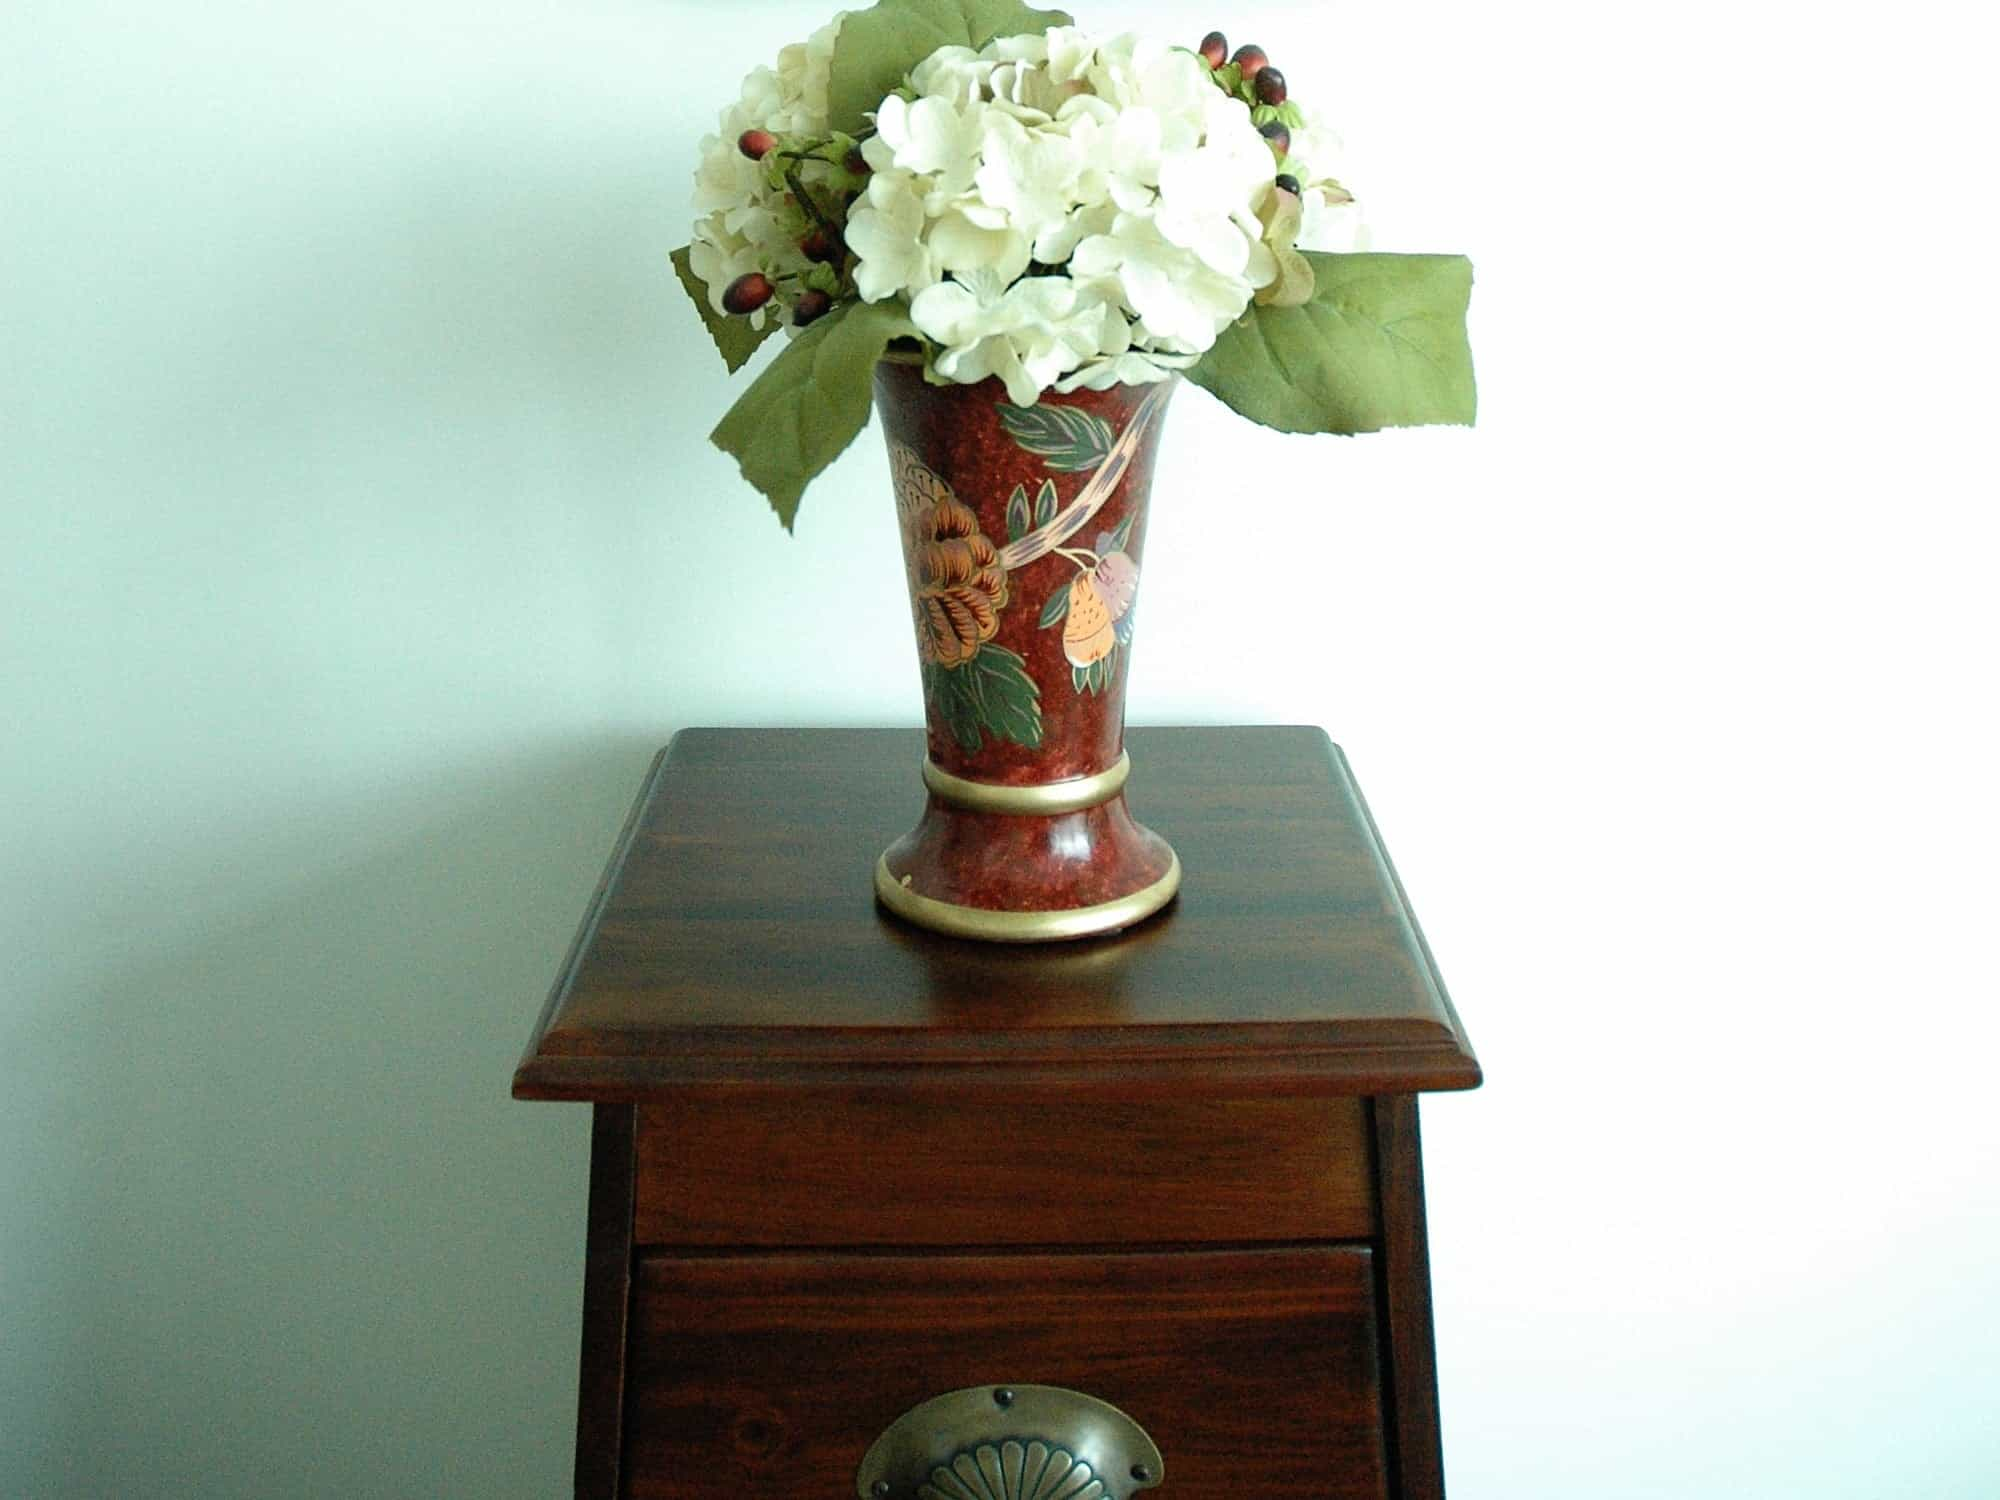 Featured Image of Asian Style Flower Vase With White Hydrangeas